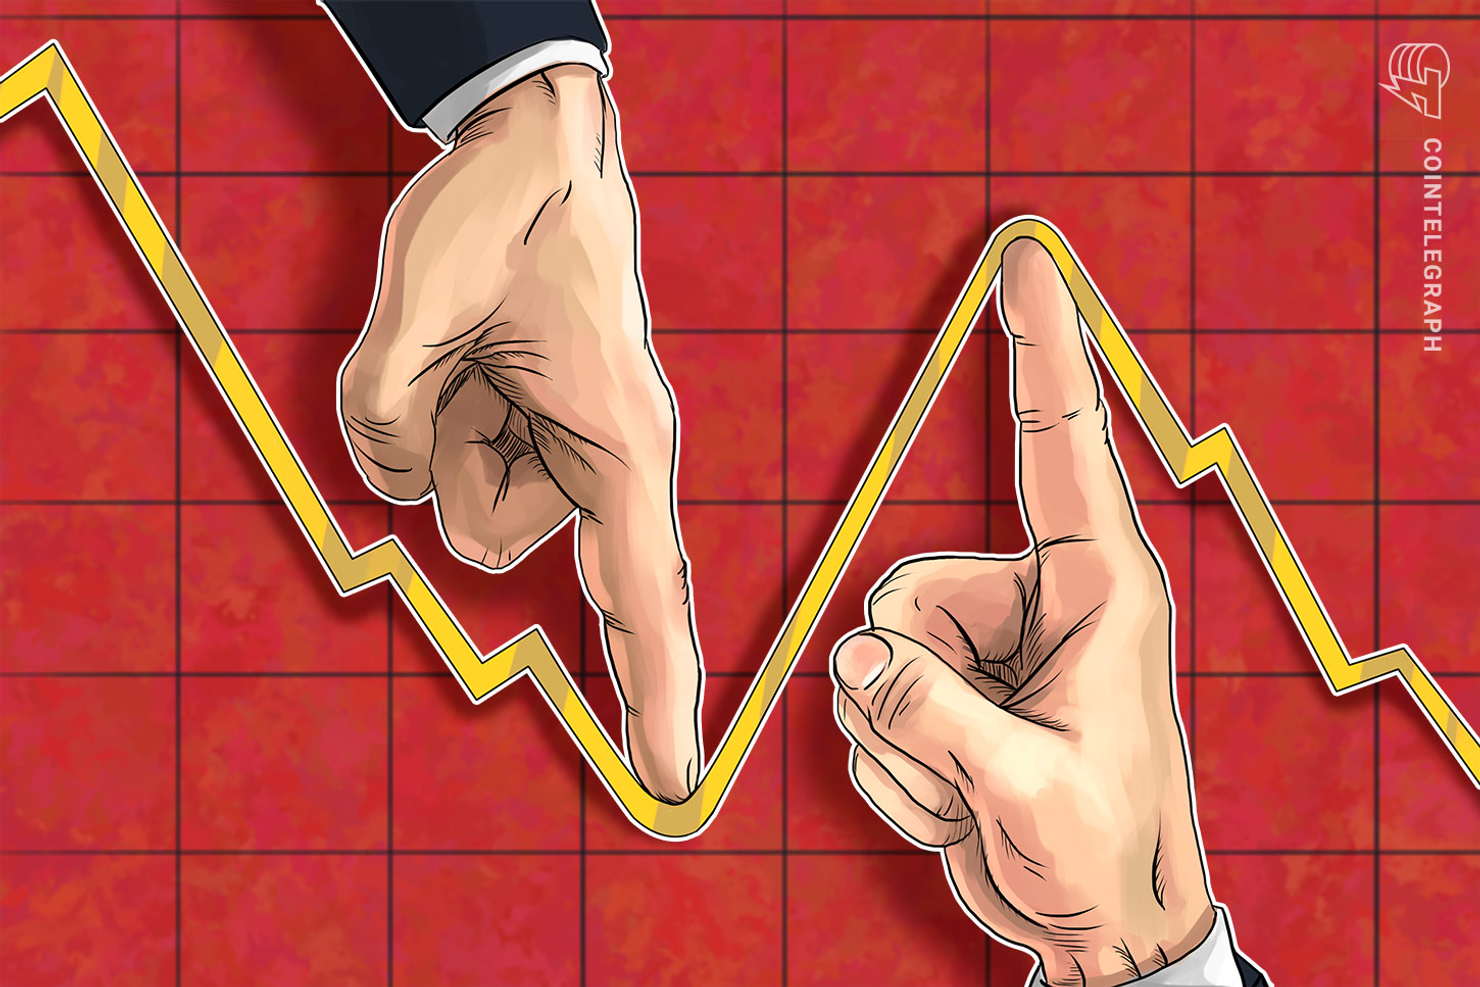 Bitcoin Falls Under $10,400 as Major Altcoins See Double-Digit Losses